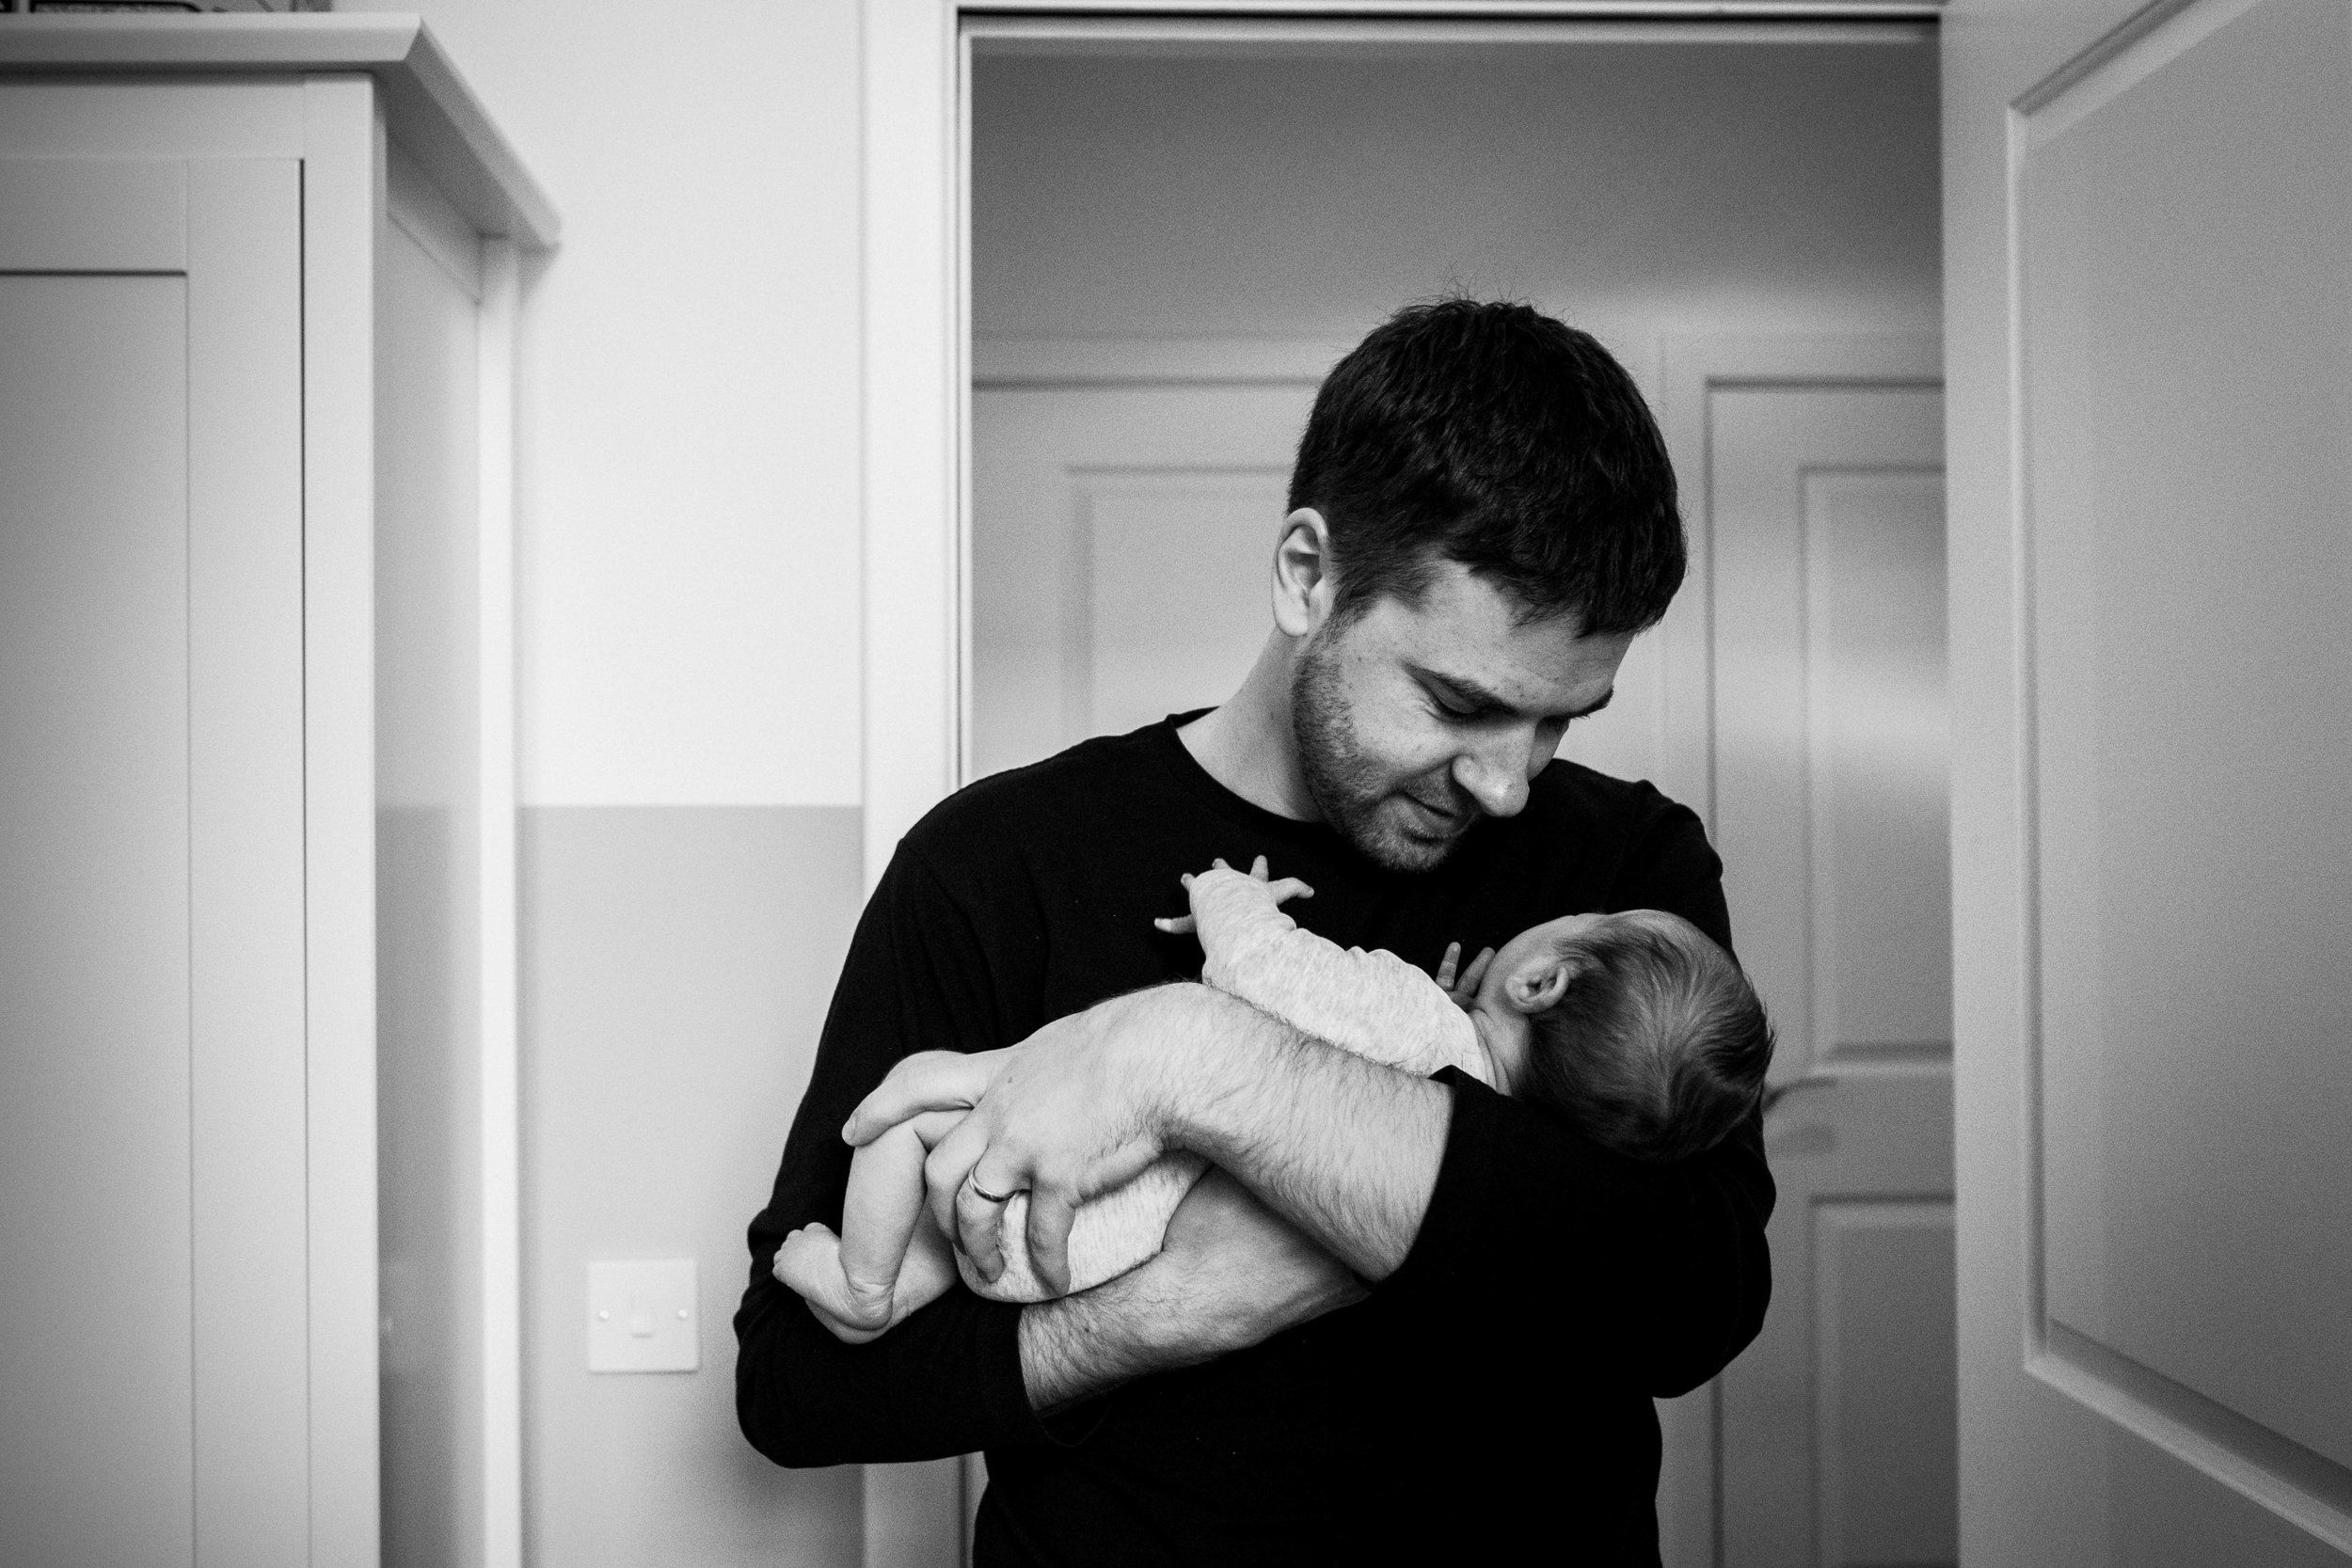 Father stands in the doorway holding his baby girl.